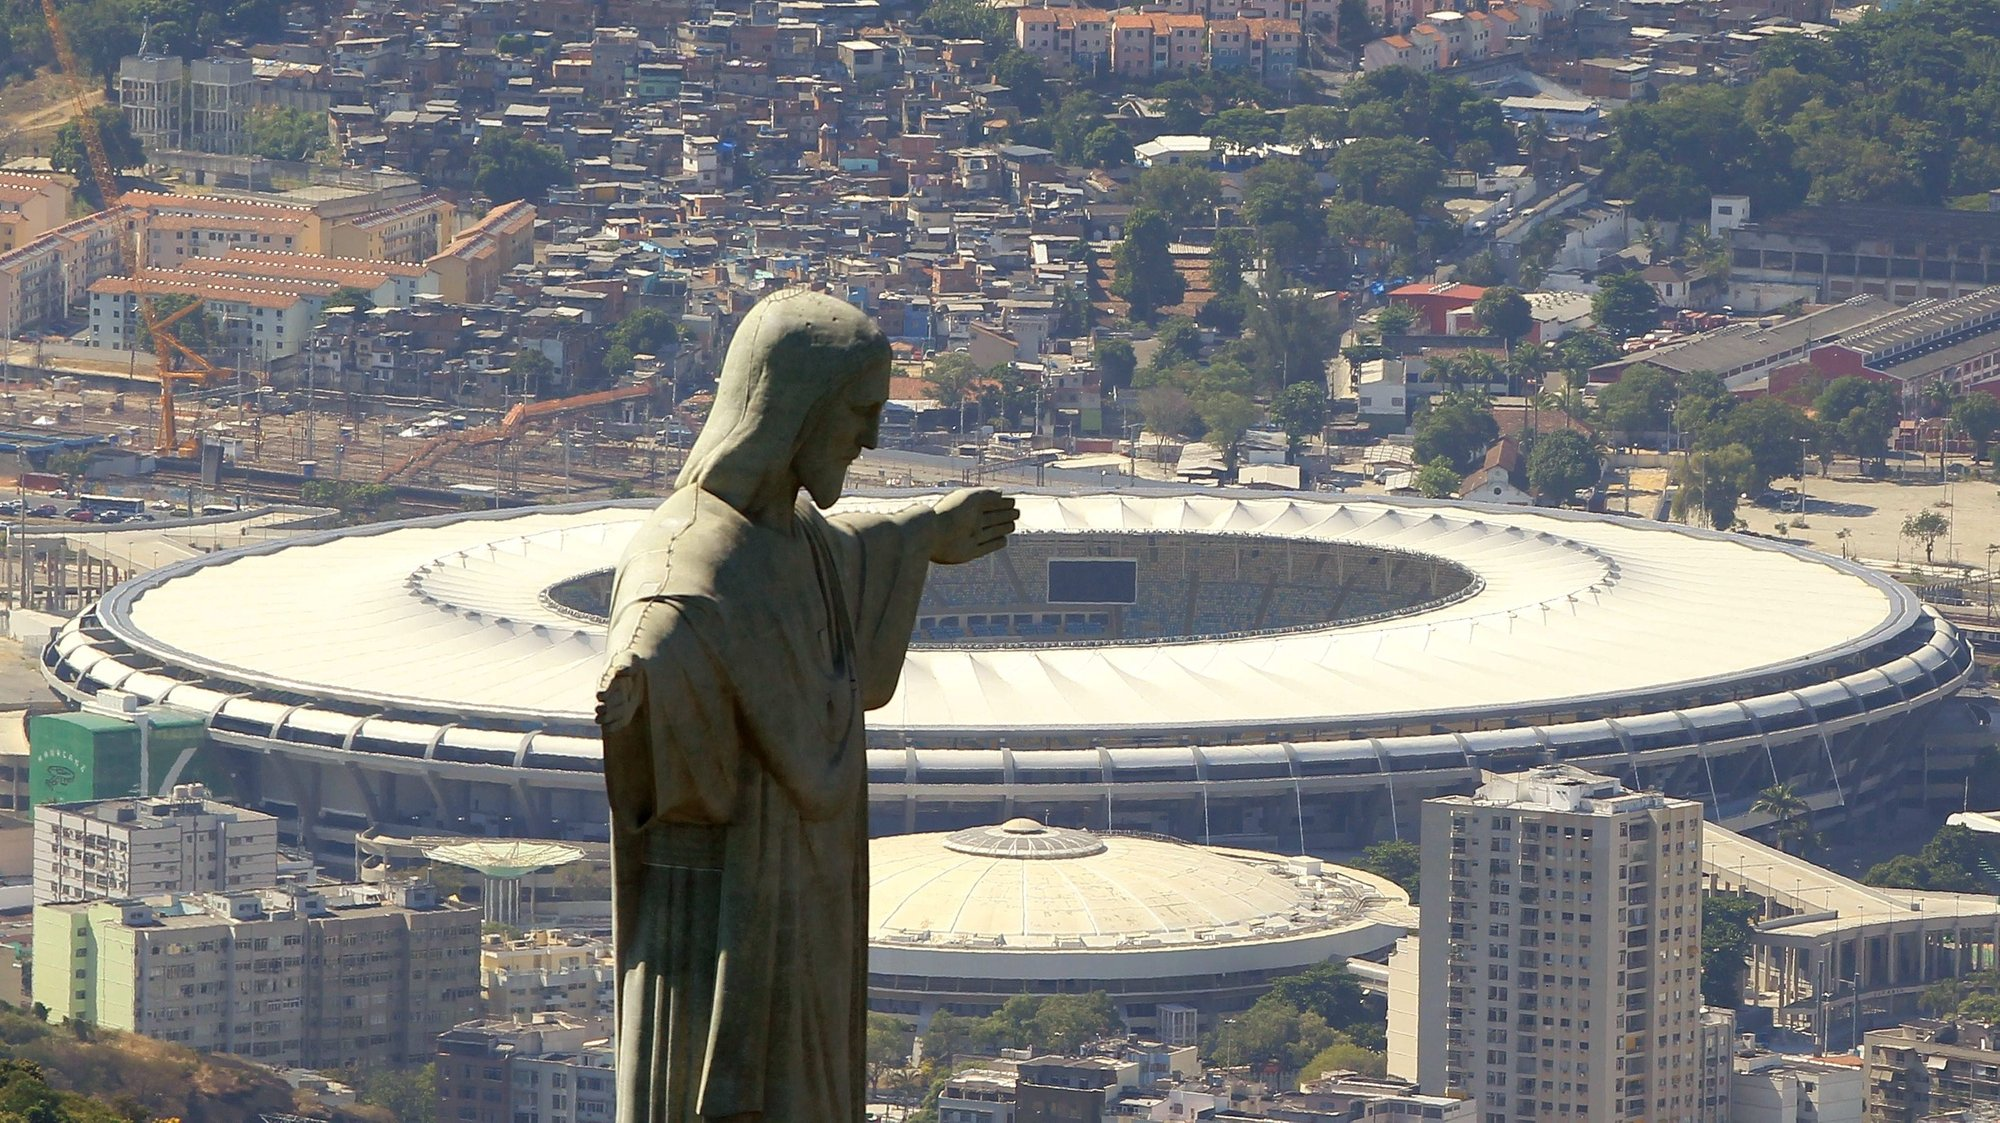 epa04141445 Picture taken on 07 February 2014 shows an aerial view of the Christ the Redeemer (Cristo Redentor) statue in front of Estadio do Maracana in Rio de Janeiro, Brazil. Once the largest stadium in the world, packing in crowds of up to 200,000, the Maracana now has an official capacity of 76,804 spectators and still remains Brazil's biggest soccer ground. Rio de Janeiro is one of the host cities of the FIFA World Cup 2014 hosting four matches in the tournament's group phase, one round of 16, one quarter final and the final match on 13 July 2014. The 20th FIFA World Cup will take place in Brazil from 12 June to 13 July 2014.  EPA/MARCELO SAYAO *** Local Caption *** 50624017